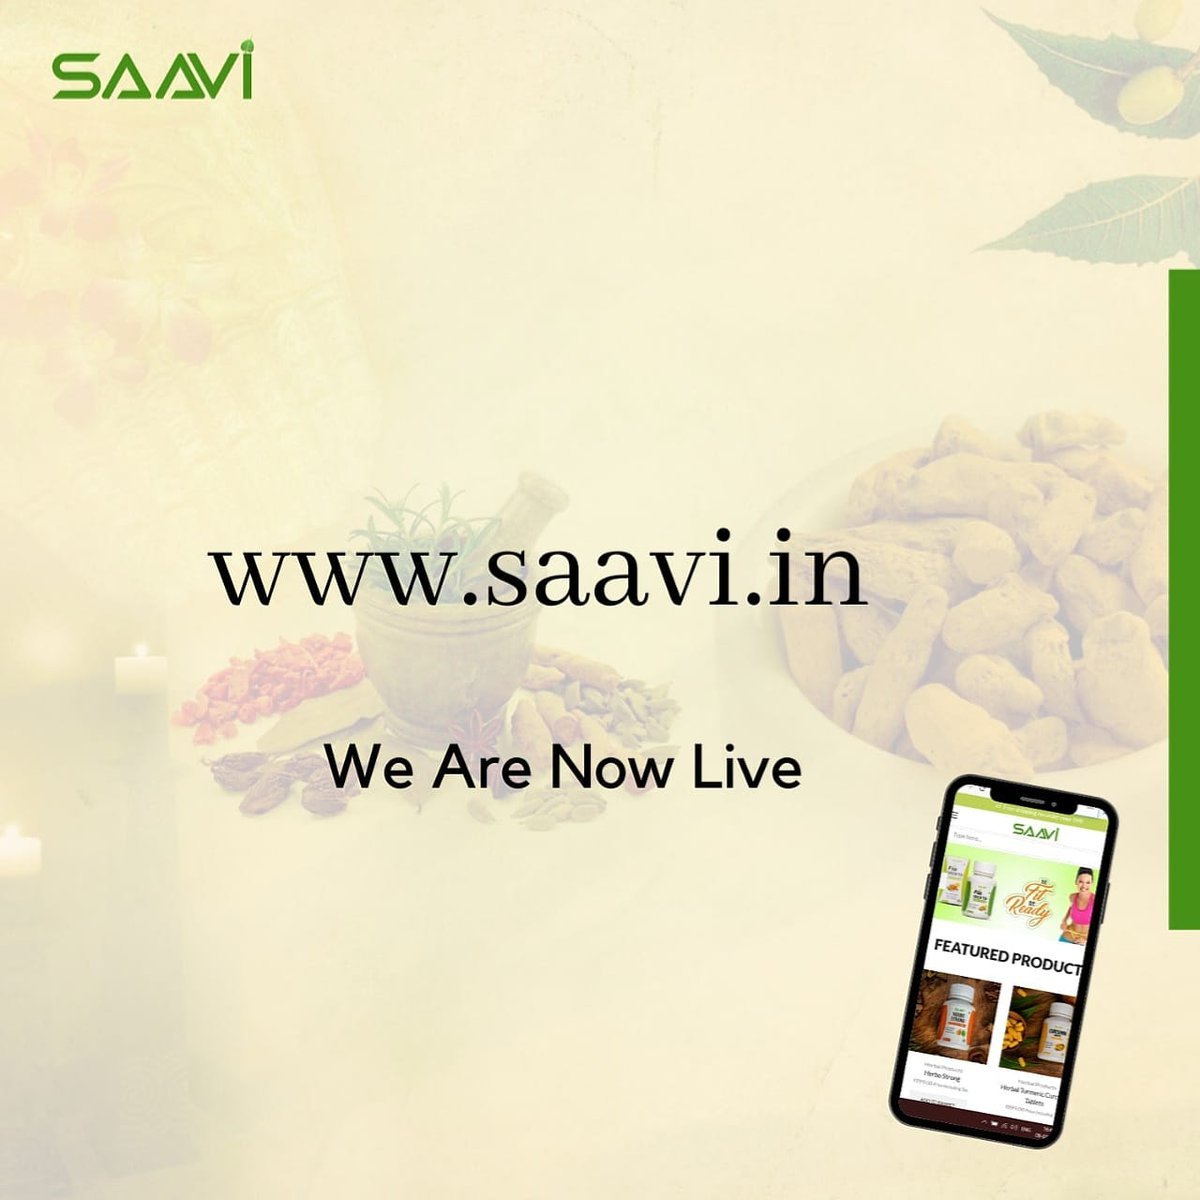 """Saavi brings you """"Scientifically advanced ayurveda of India"""" at your convince.   Now all your pure ayurvedic needs will be just a click away  Stay connected  _______ . .  #saavi #india #ayurved #innovation #jaipur #update #bestpost #suppliments #natural #healthylifestylepic.twitter.com/i77fXRCI9m"""